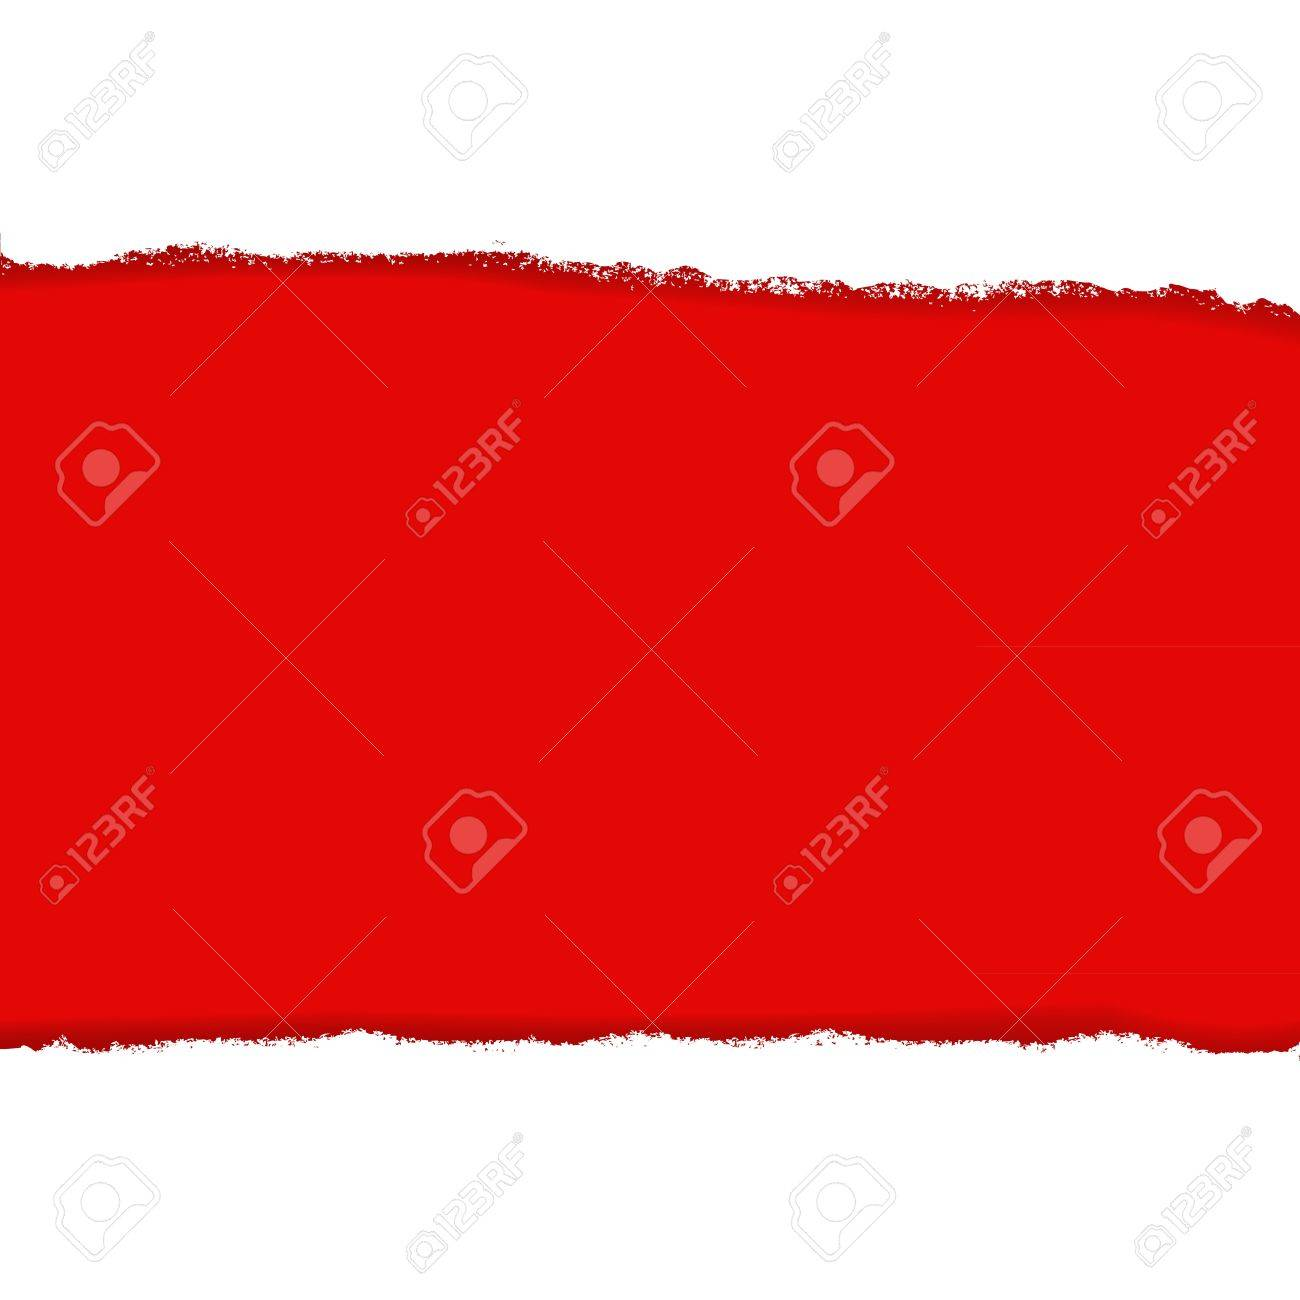 Rip Paper And Red Background, Vector Illustration Stock Vector - 15975524